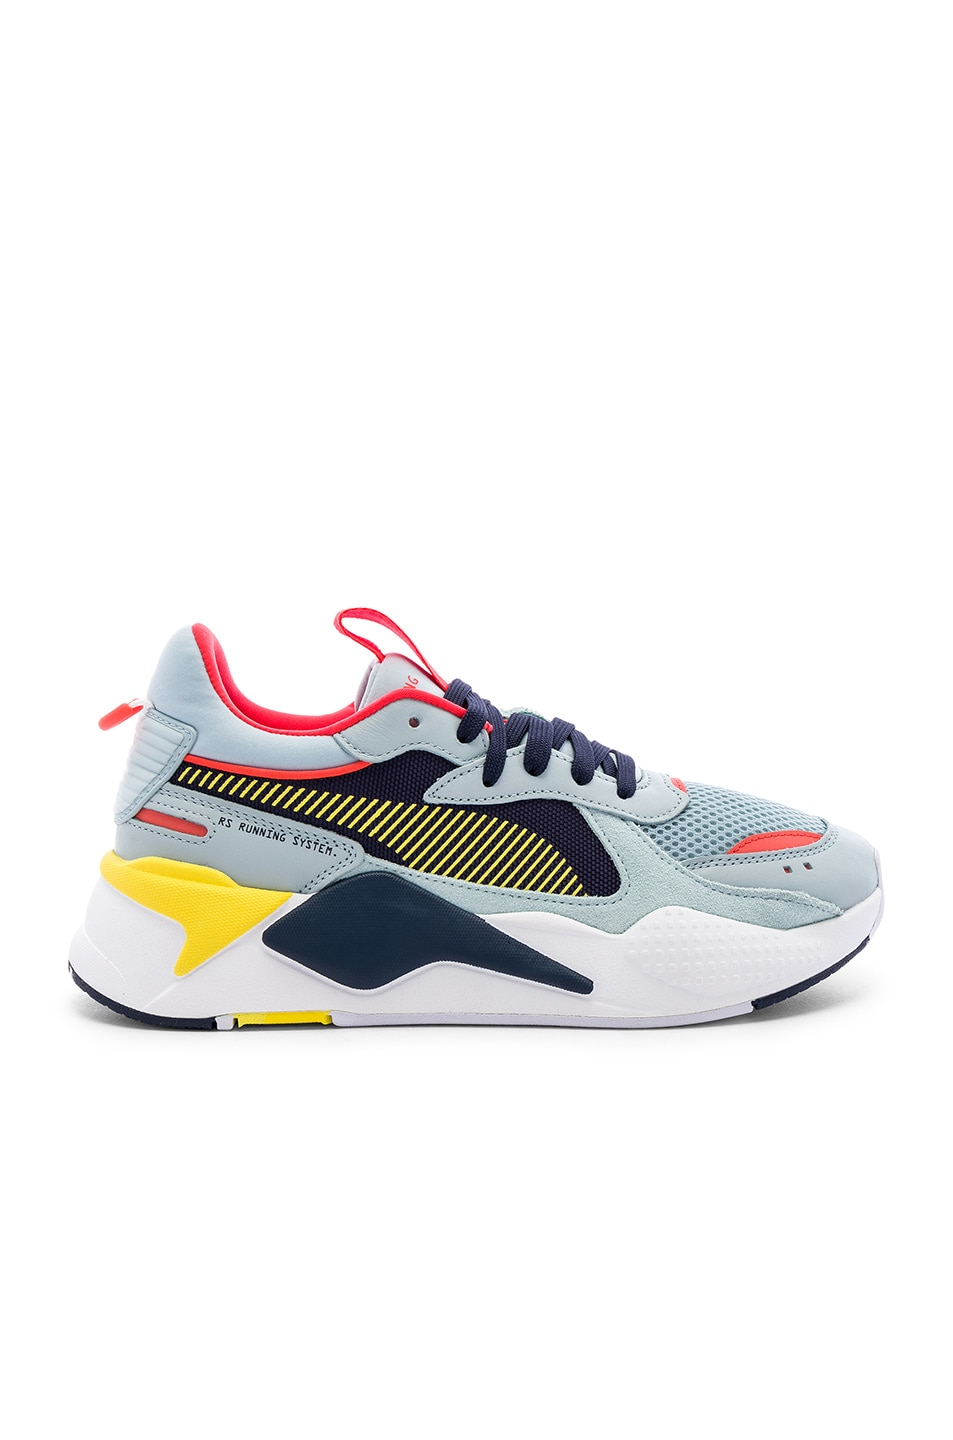 cbf26b211 Image 2 of Puma Select RS-X Reinvention in Light Sky-Peacoat